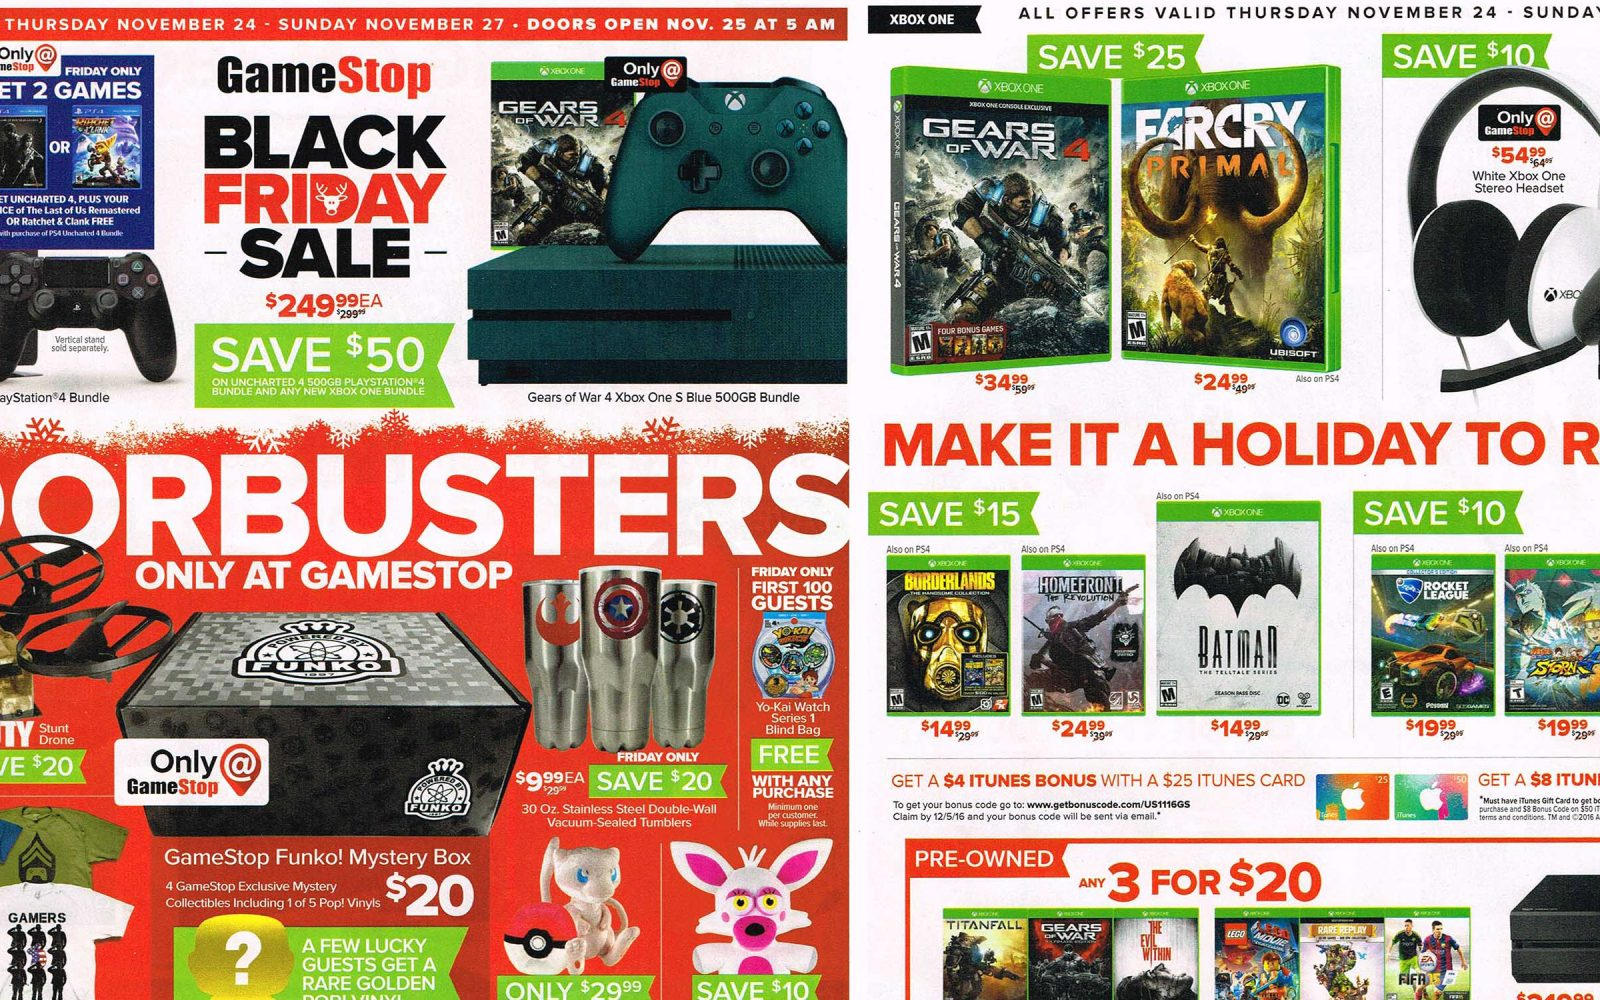 gamestop black friday 2016 ad ps4 bundle extra game 250 deus ex mankind bioshock collection 30 ea more - Is Gamestop Open On Christmas Day